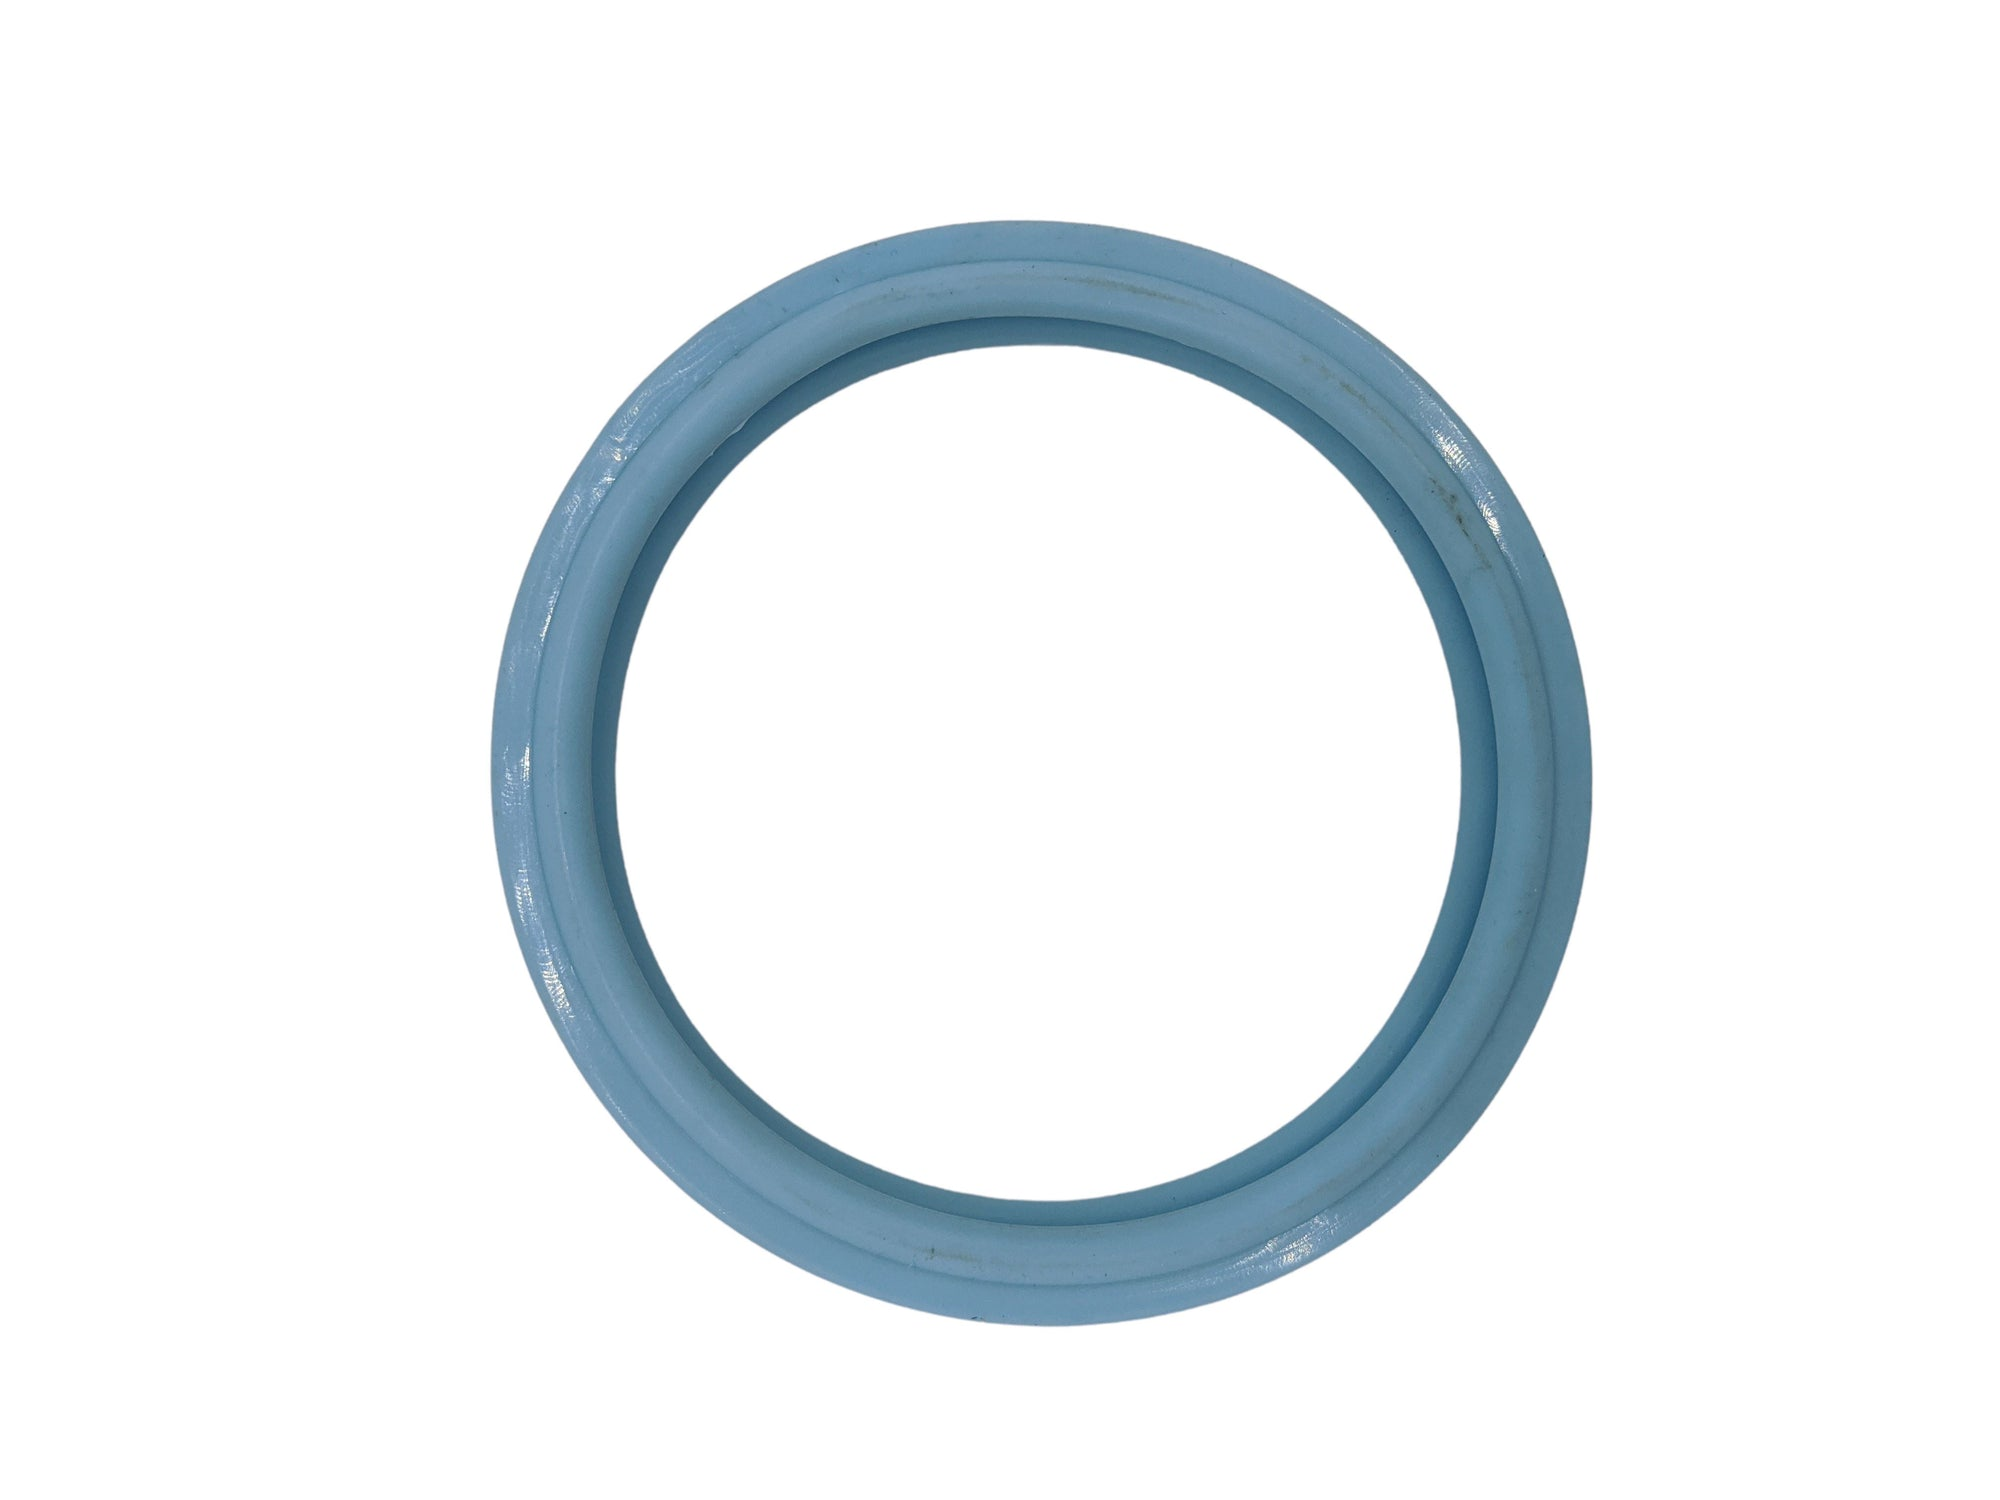 Pentair 79108600 79108500 4 Inch Silicone Gasket SpaBrite AquaLight Spa Light Home & Garden > Pool & Spa Pentair